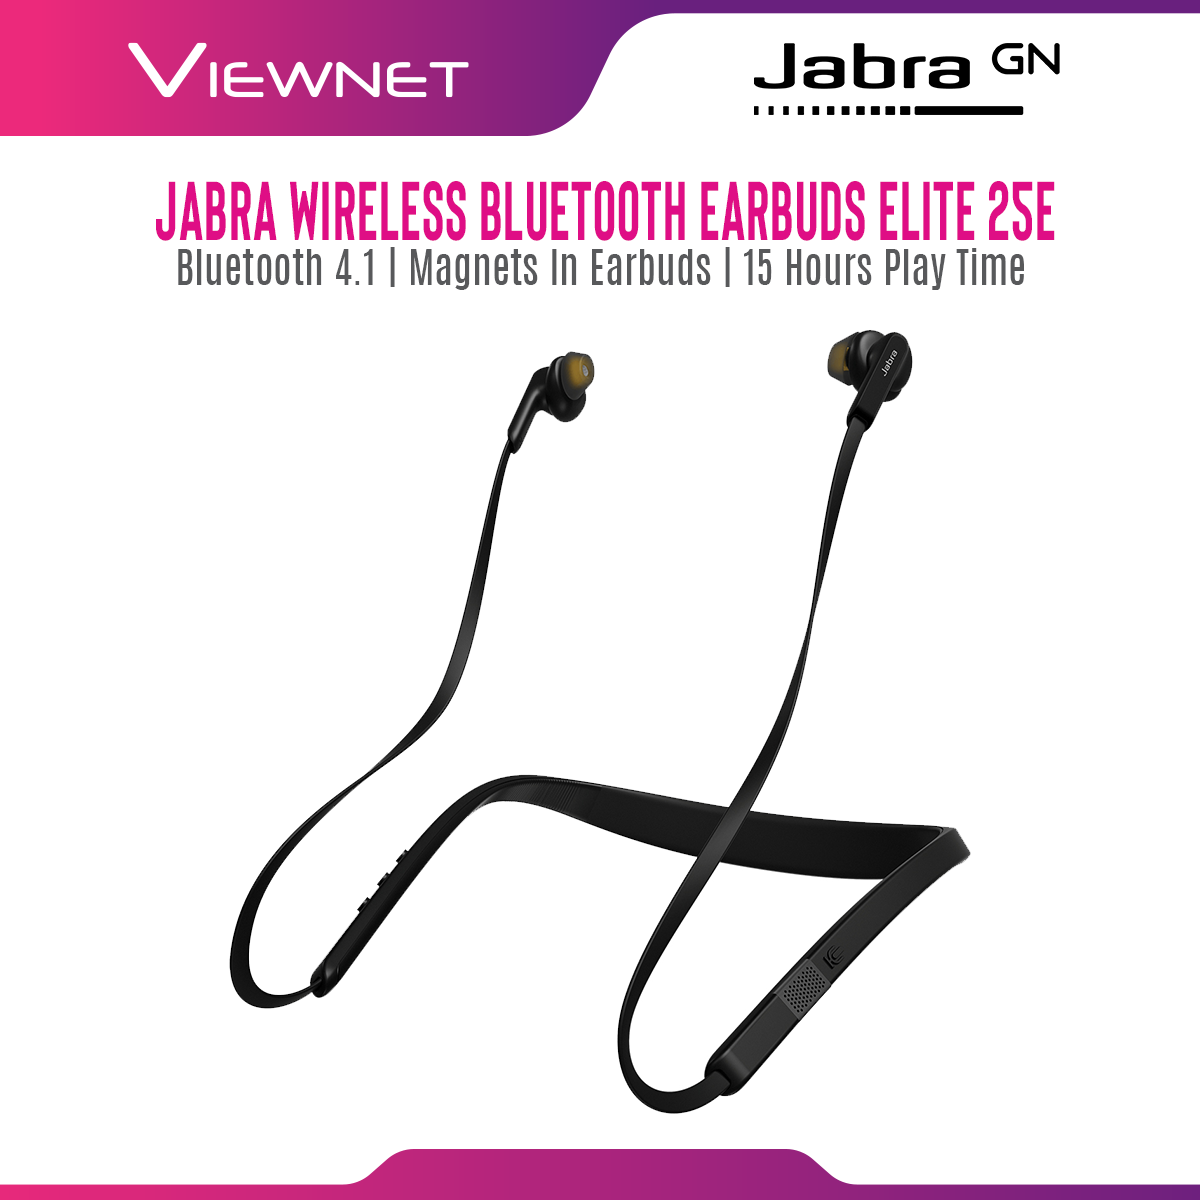 Jabra Elite 25e Wireless Bluetooth Stereo Neckband In-Ear Headphones with Magnetic Earbuds, Call Vibration Alert